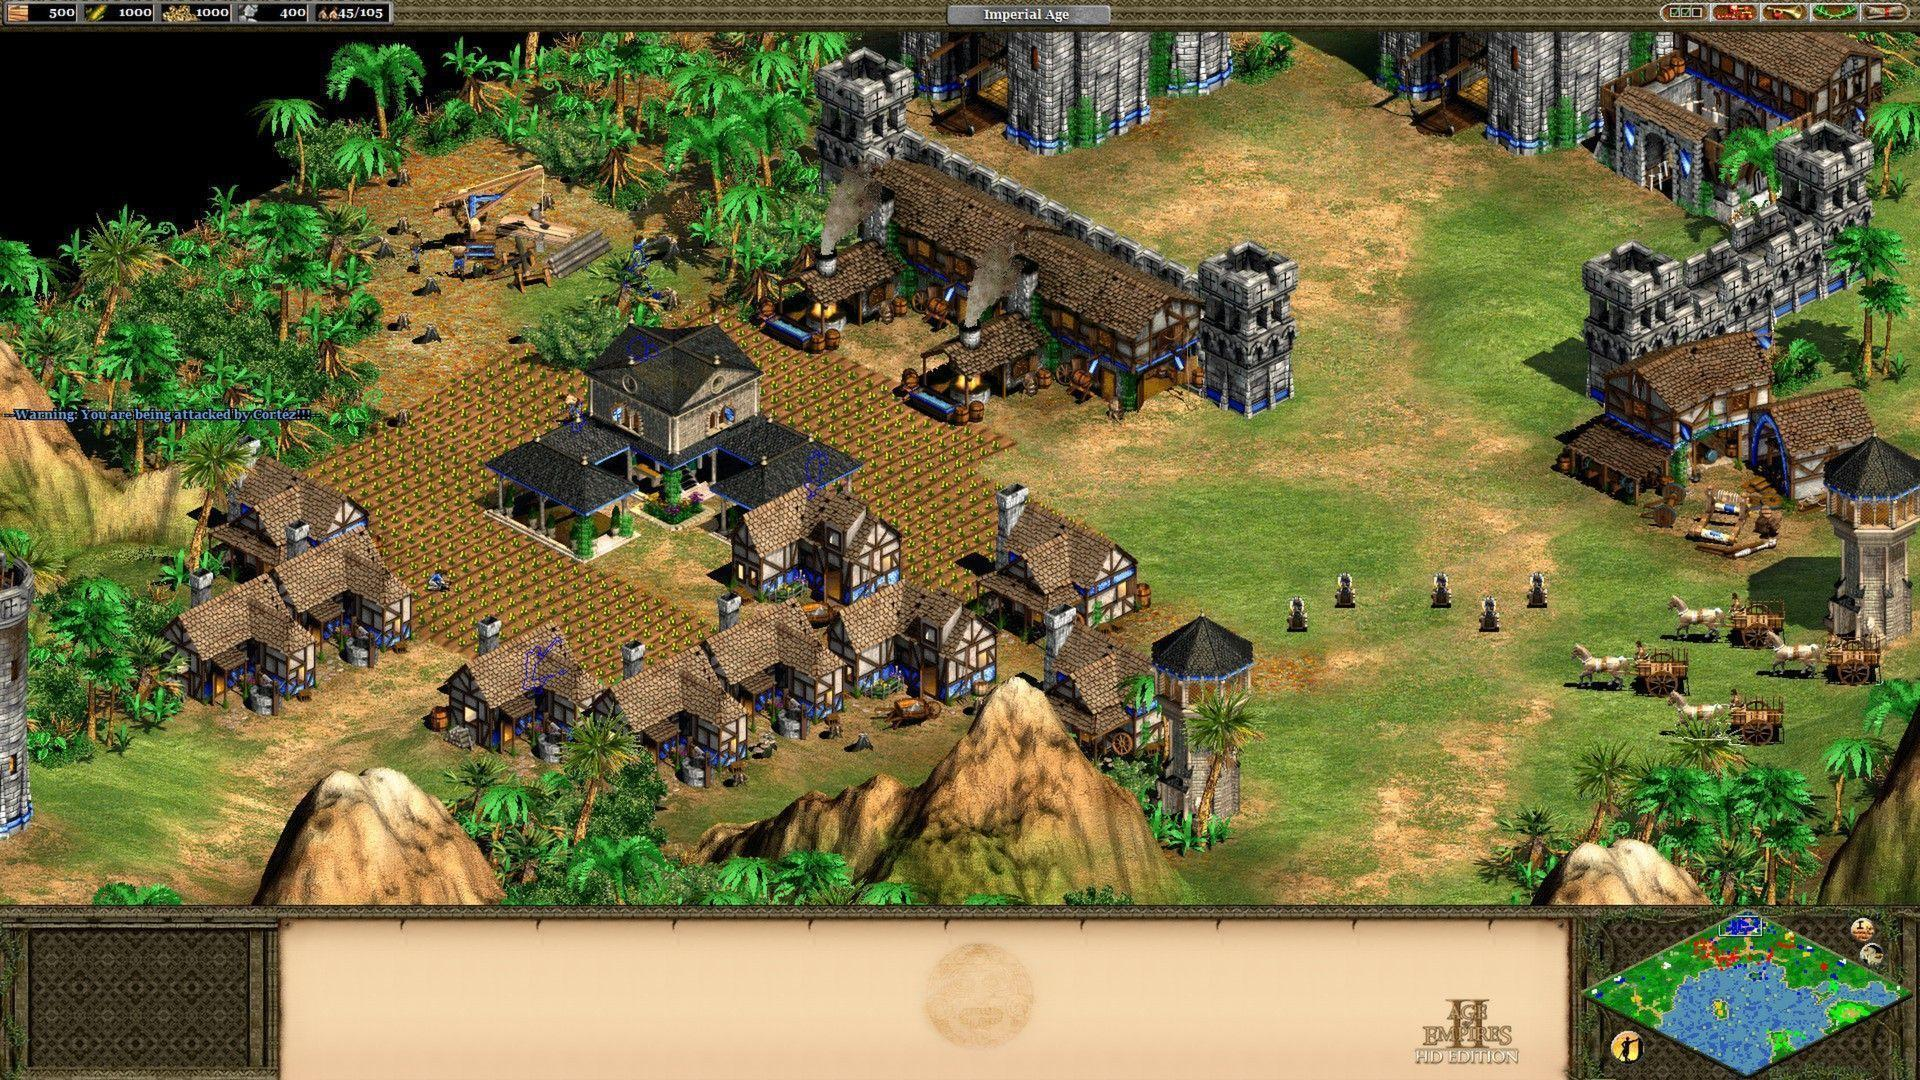 1920x1080px #688086 Age Of Empires 2 (930.68 KB) | 28.03.2015 | By ...